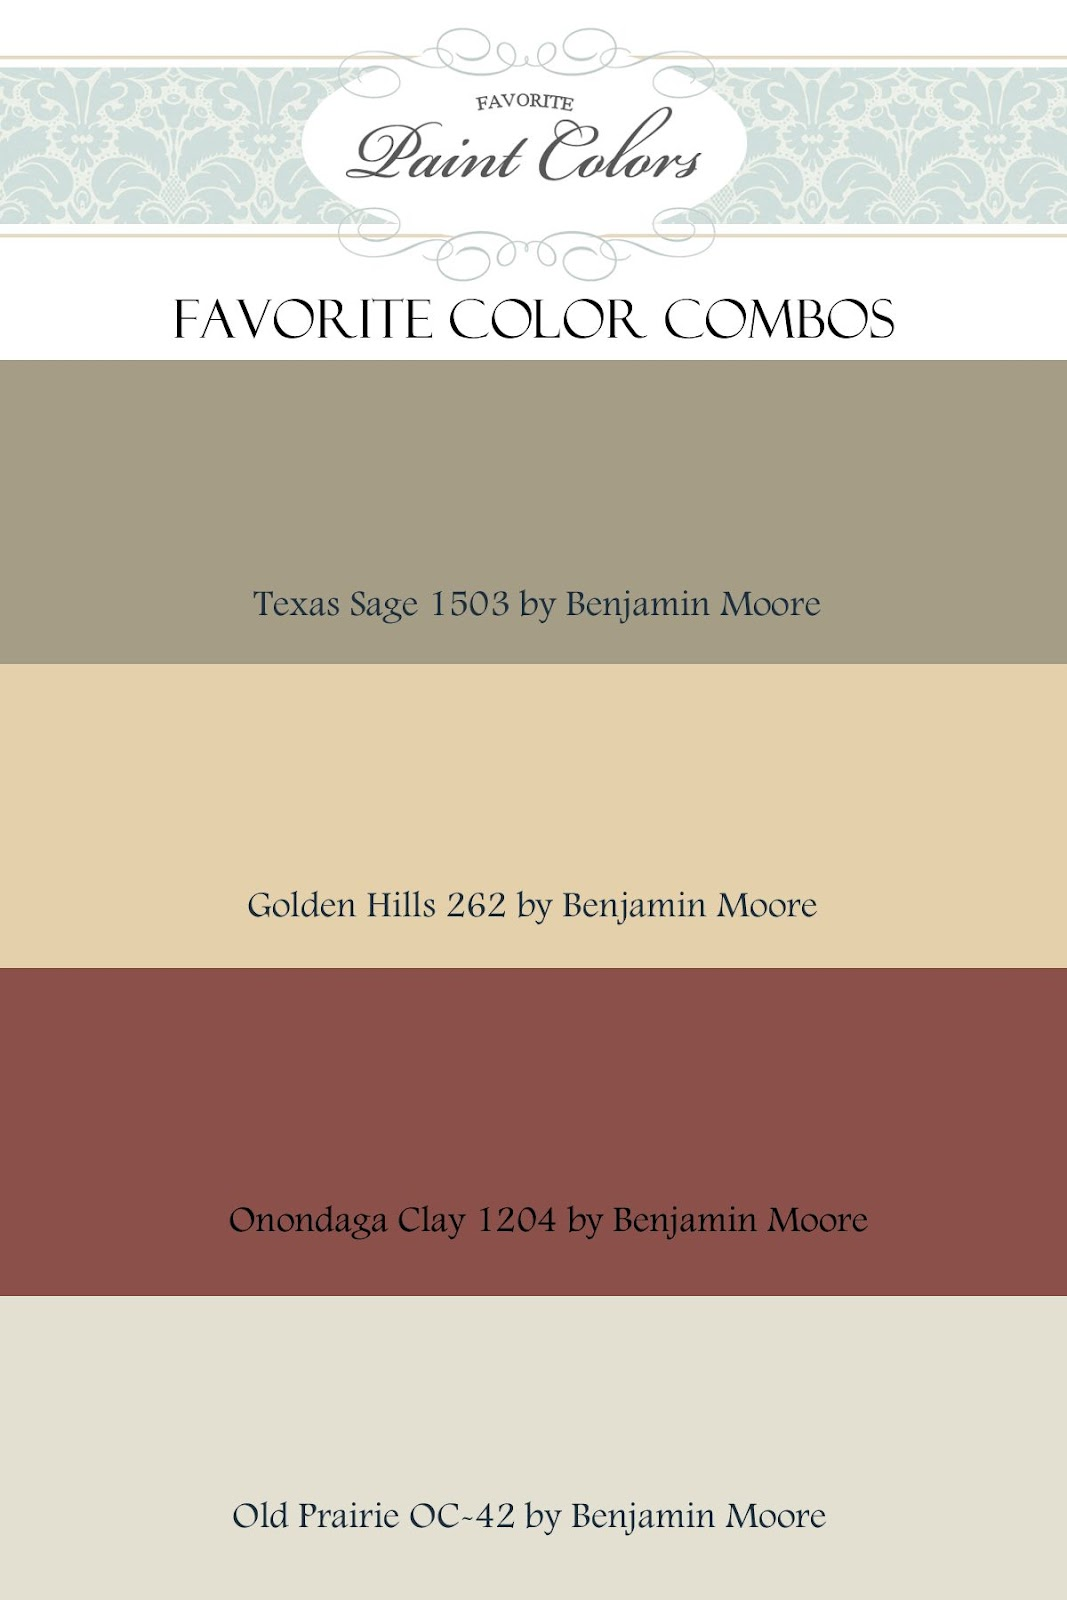 Benjamin Moore Color Combination Favorite Paint Colors Blog